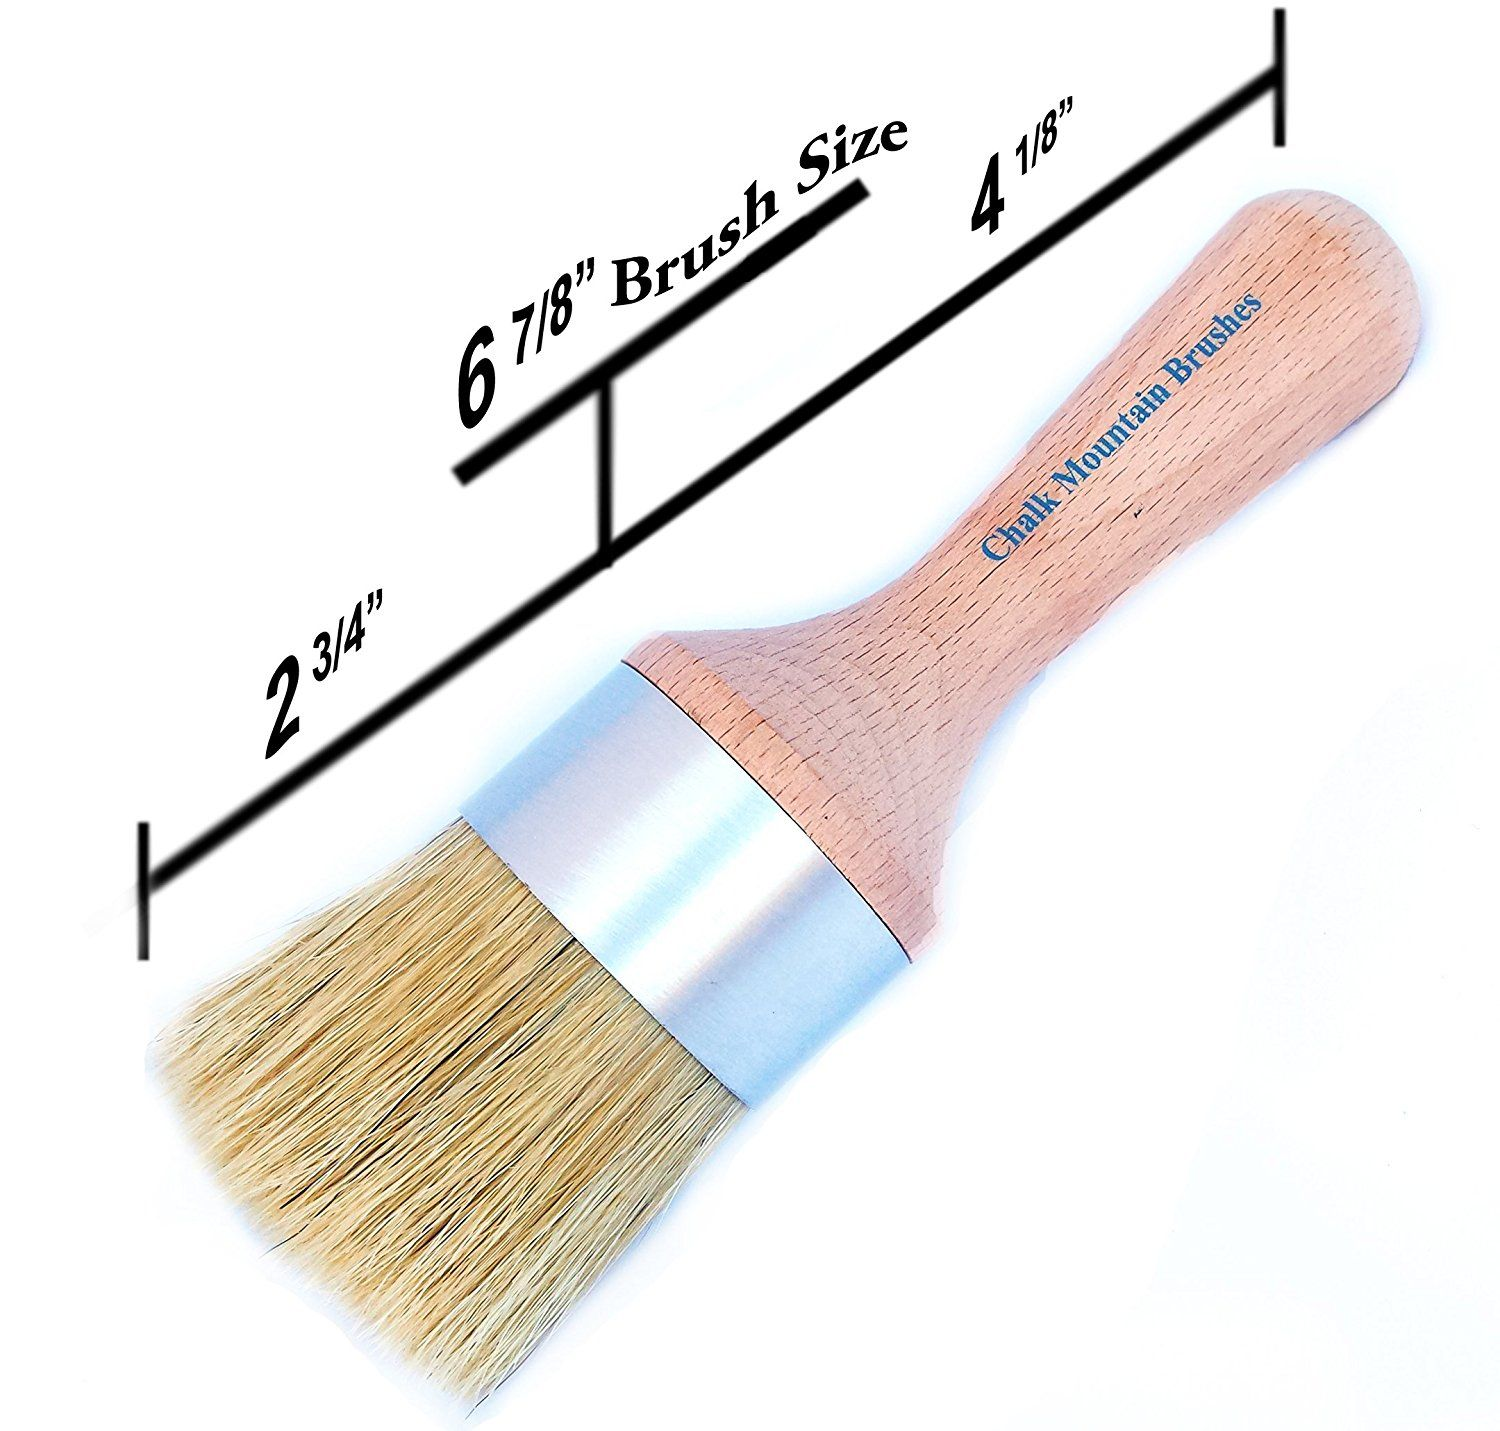 Chalk Mountain Brushes New Look Large Round Boar Hair Bristle Diy Furniture Wax Or Stenciling Brush Special Product Diy Furniture Wax Chalk Furniture Wax